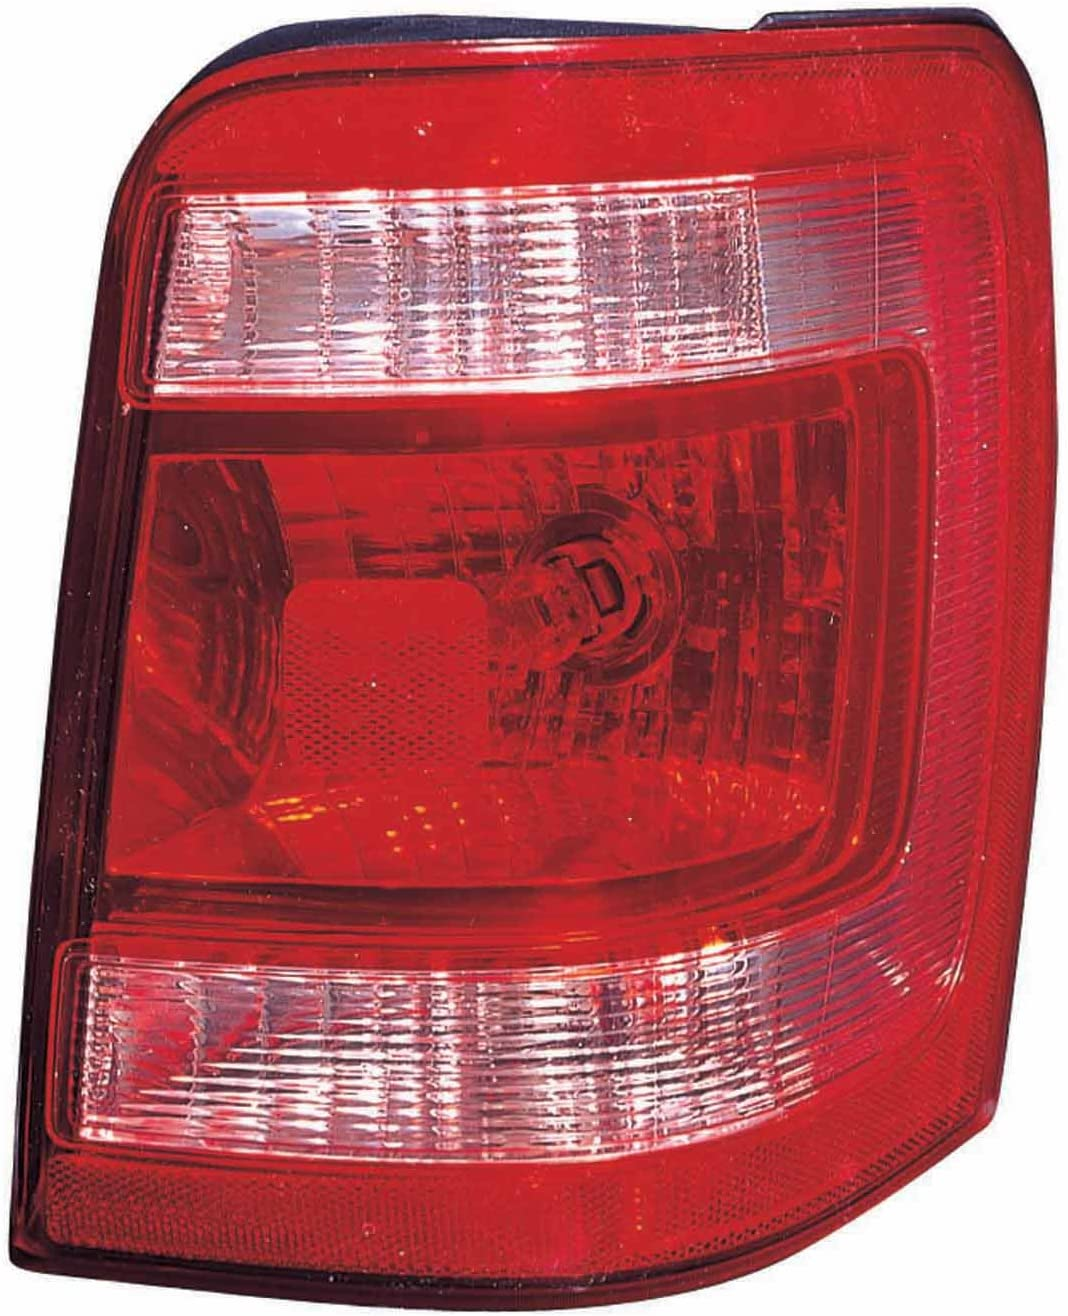 DEPO 330-1938R-UC Replacement Passenger Side Tail Light Assembly (This product is an aftermarket product. It is not created or sold by the OE car company)